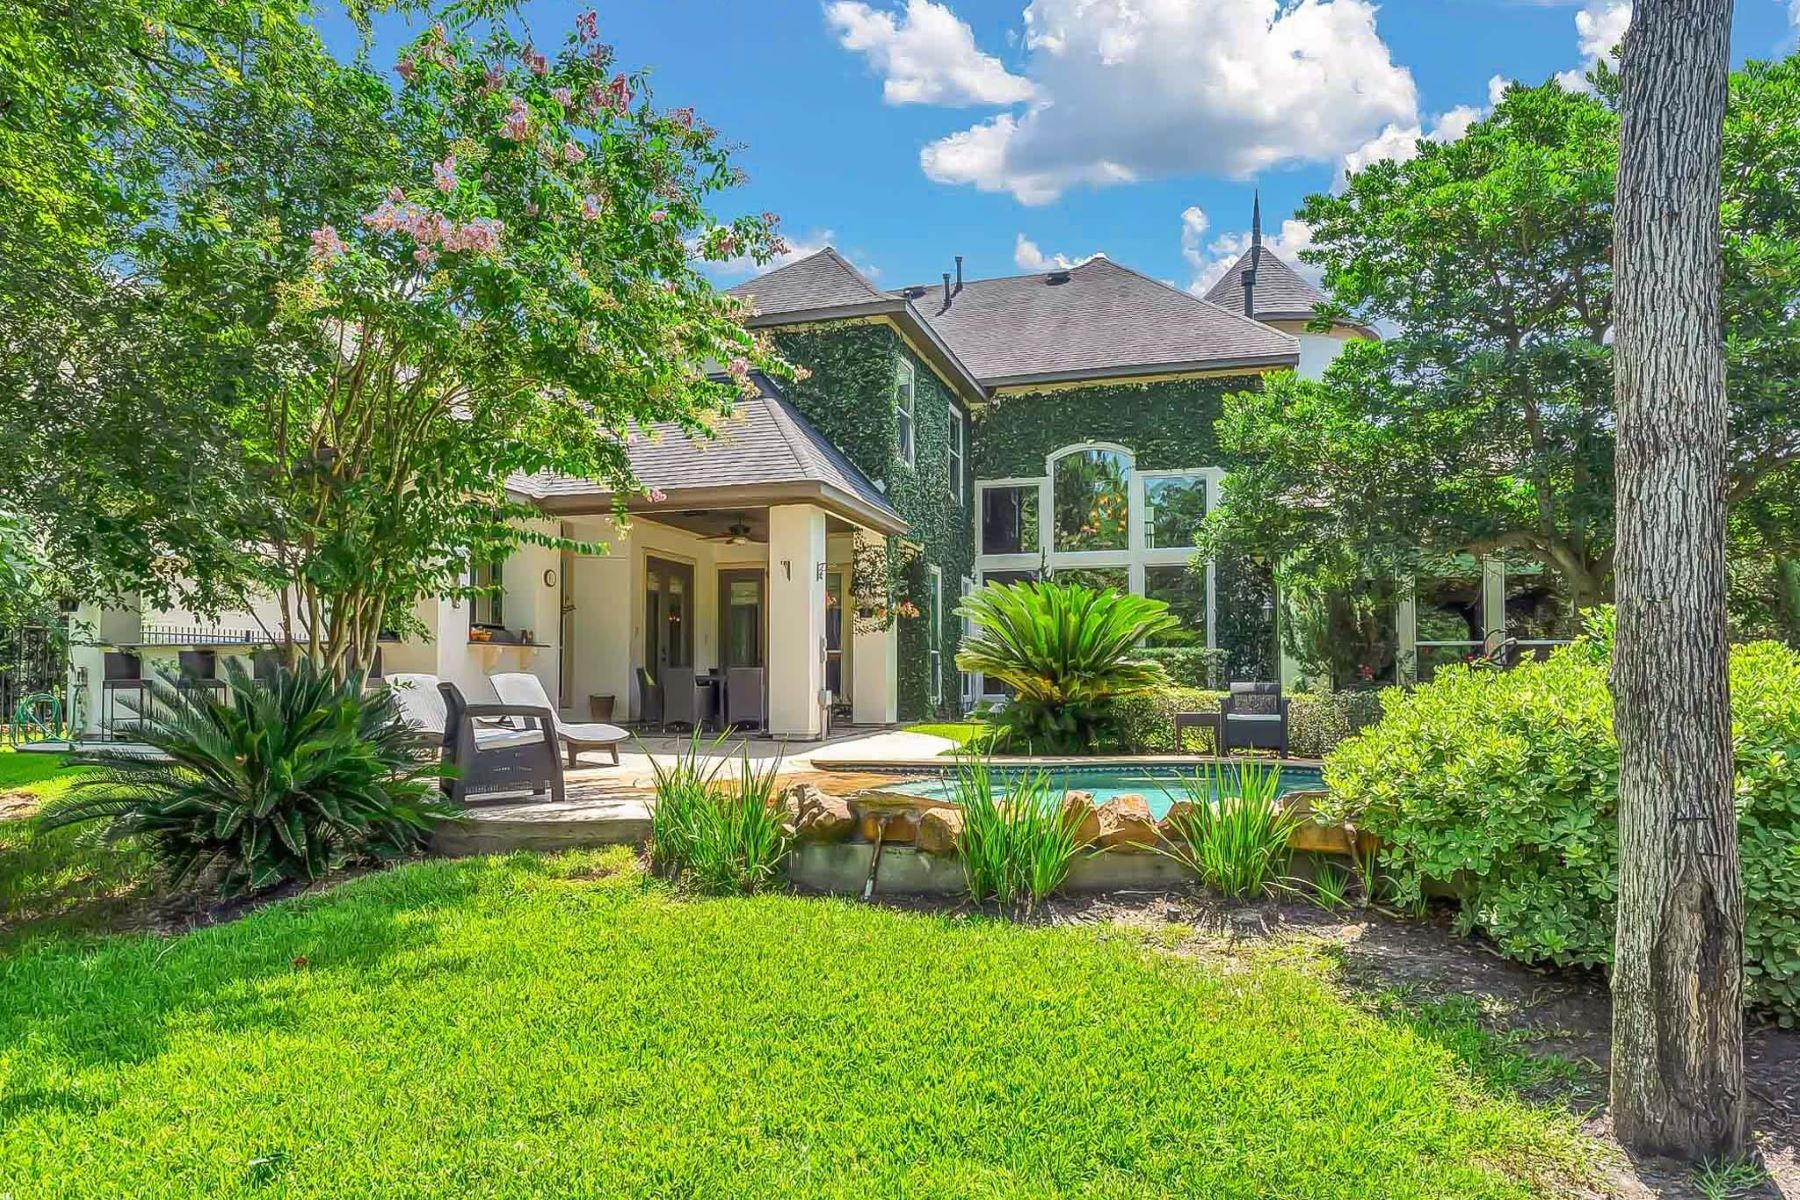 Single Family Homes for Sale at 31 Player Vista Place The Woodlands, Texas 77382 United States